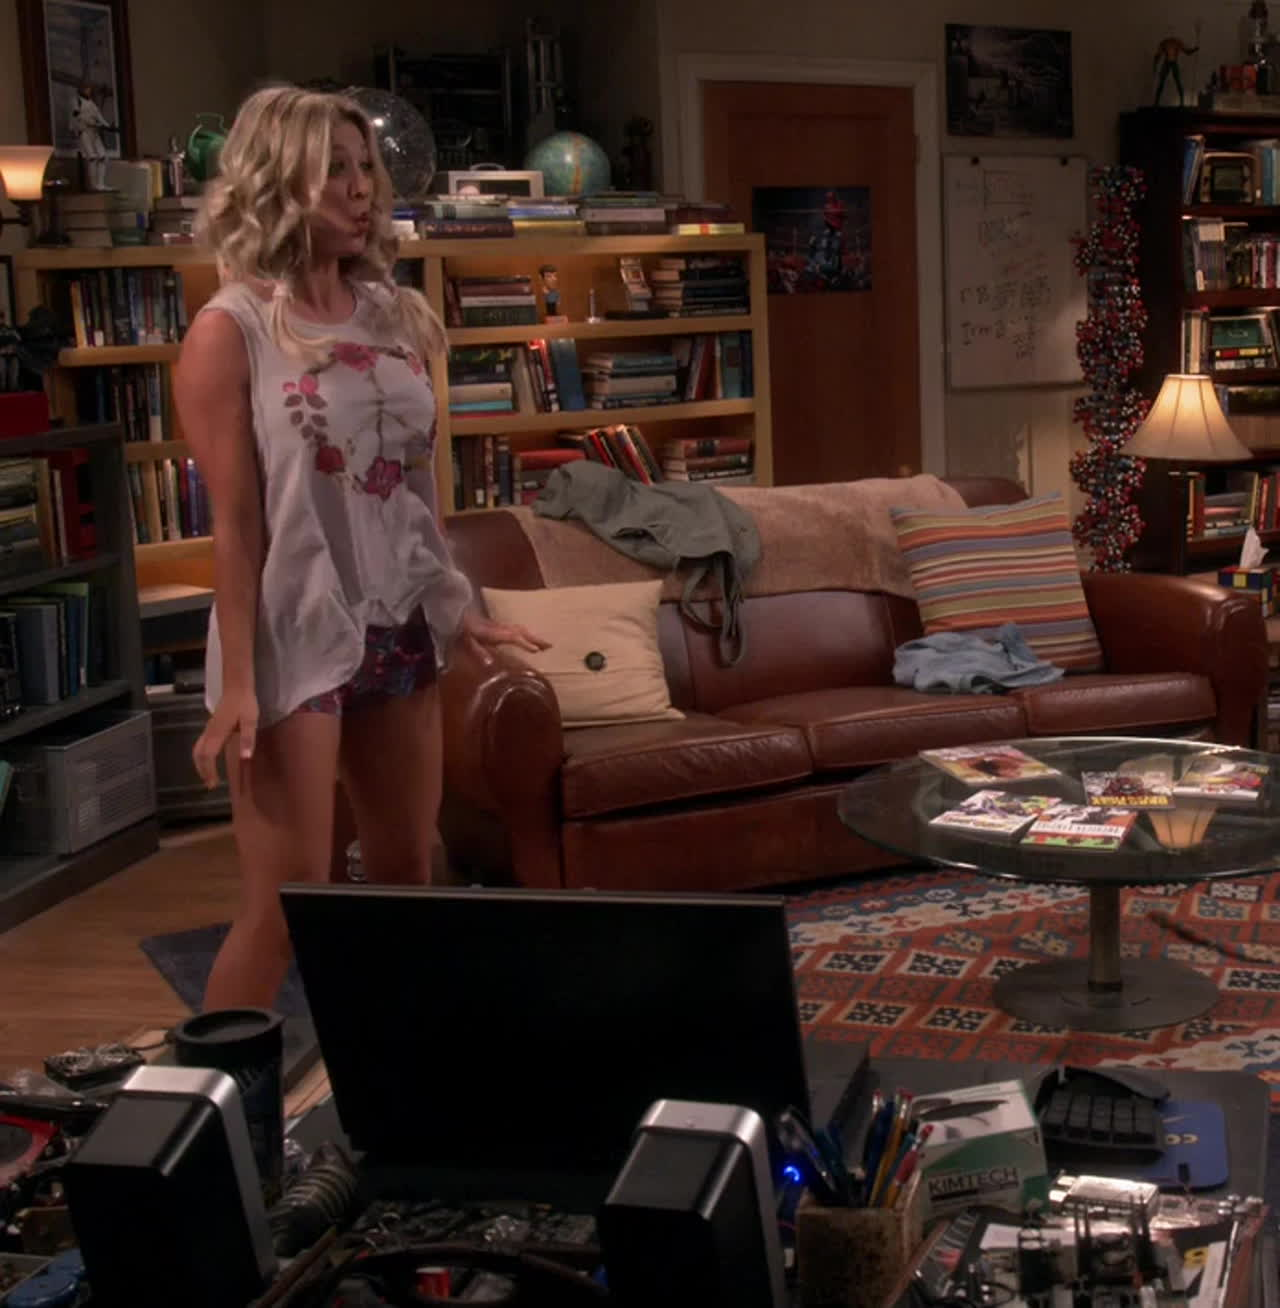 Kaley Cuoco Dancing Shaking her Big Tits on Big Bang Theory